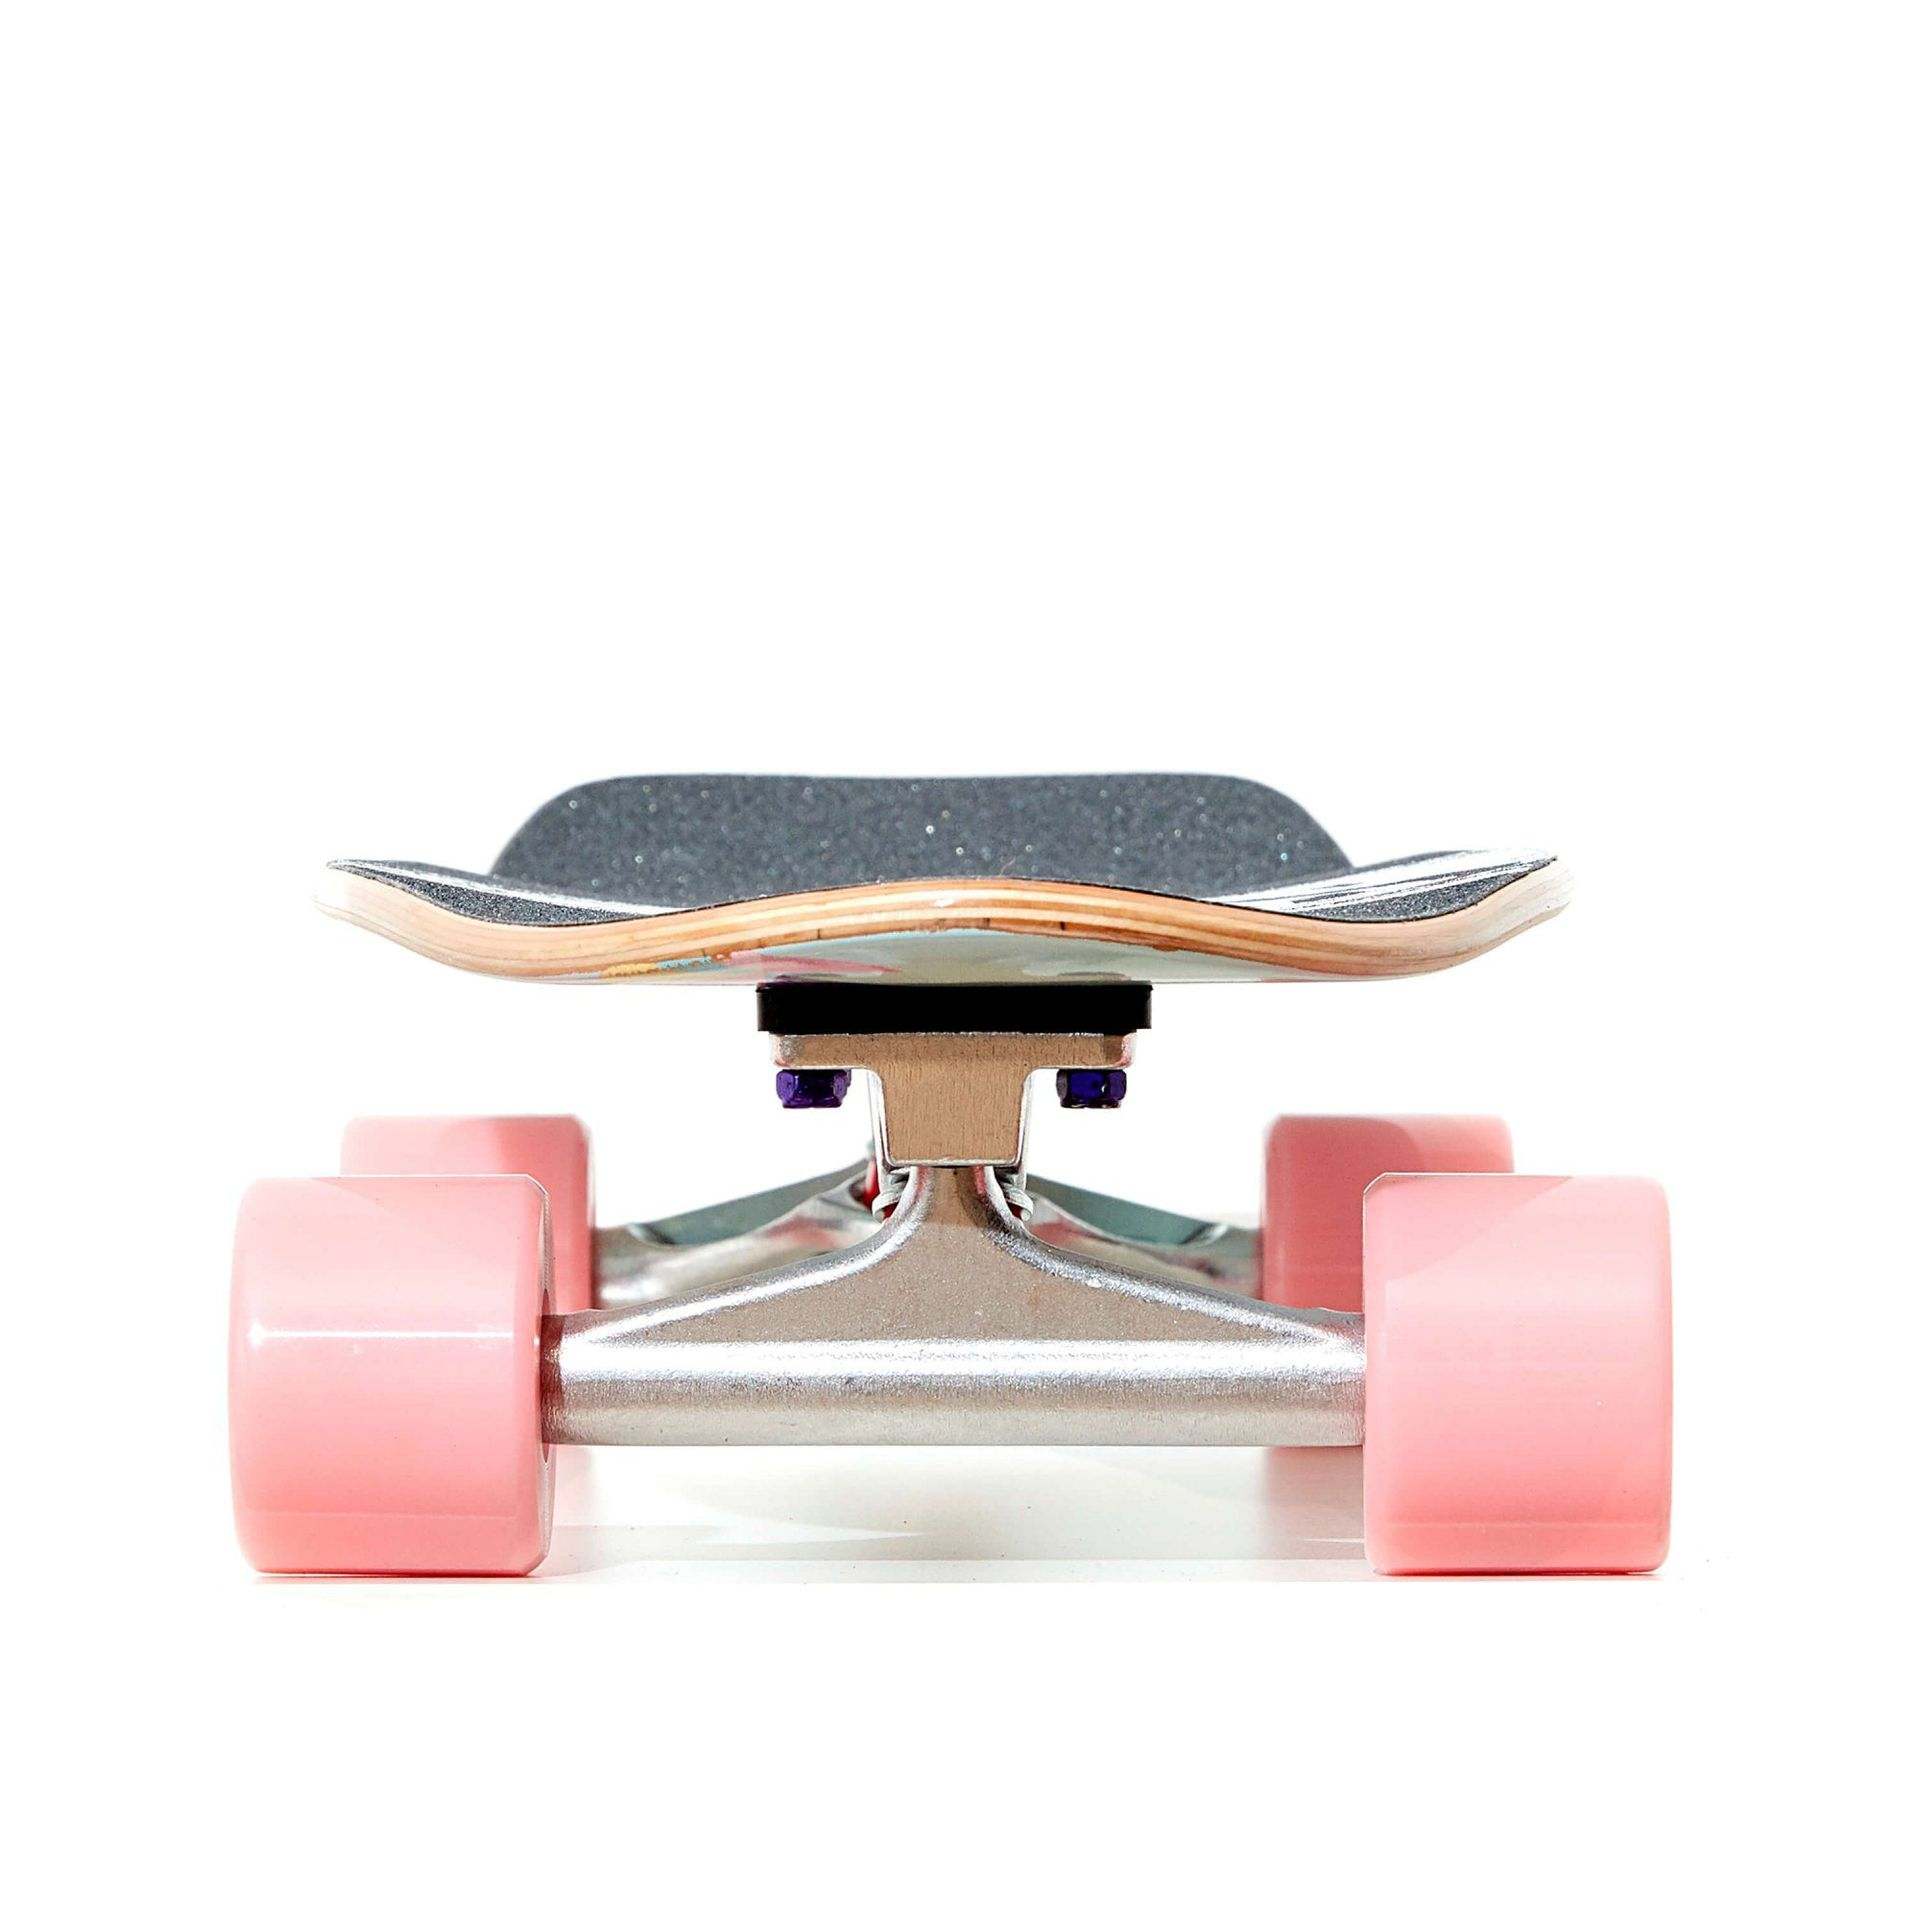 FISHBOARD FISH SKATEBOARDS CRUISER 26 PARTY|SILVER|SUMMER PINK 2